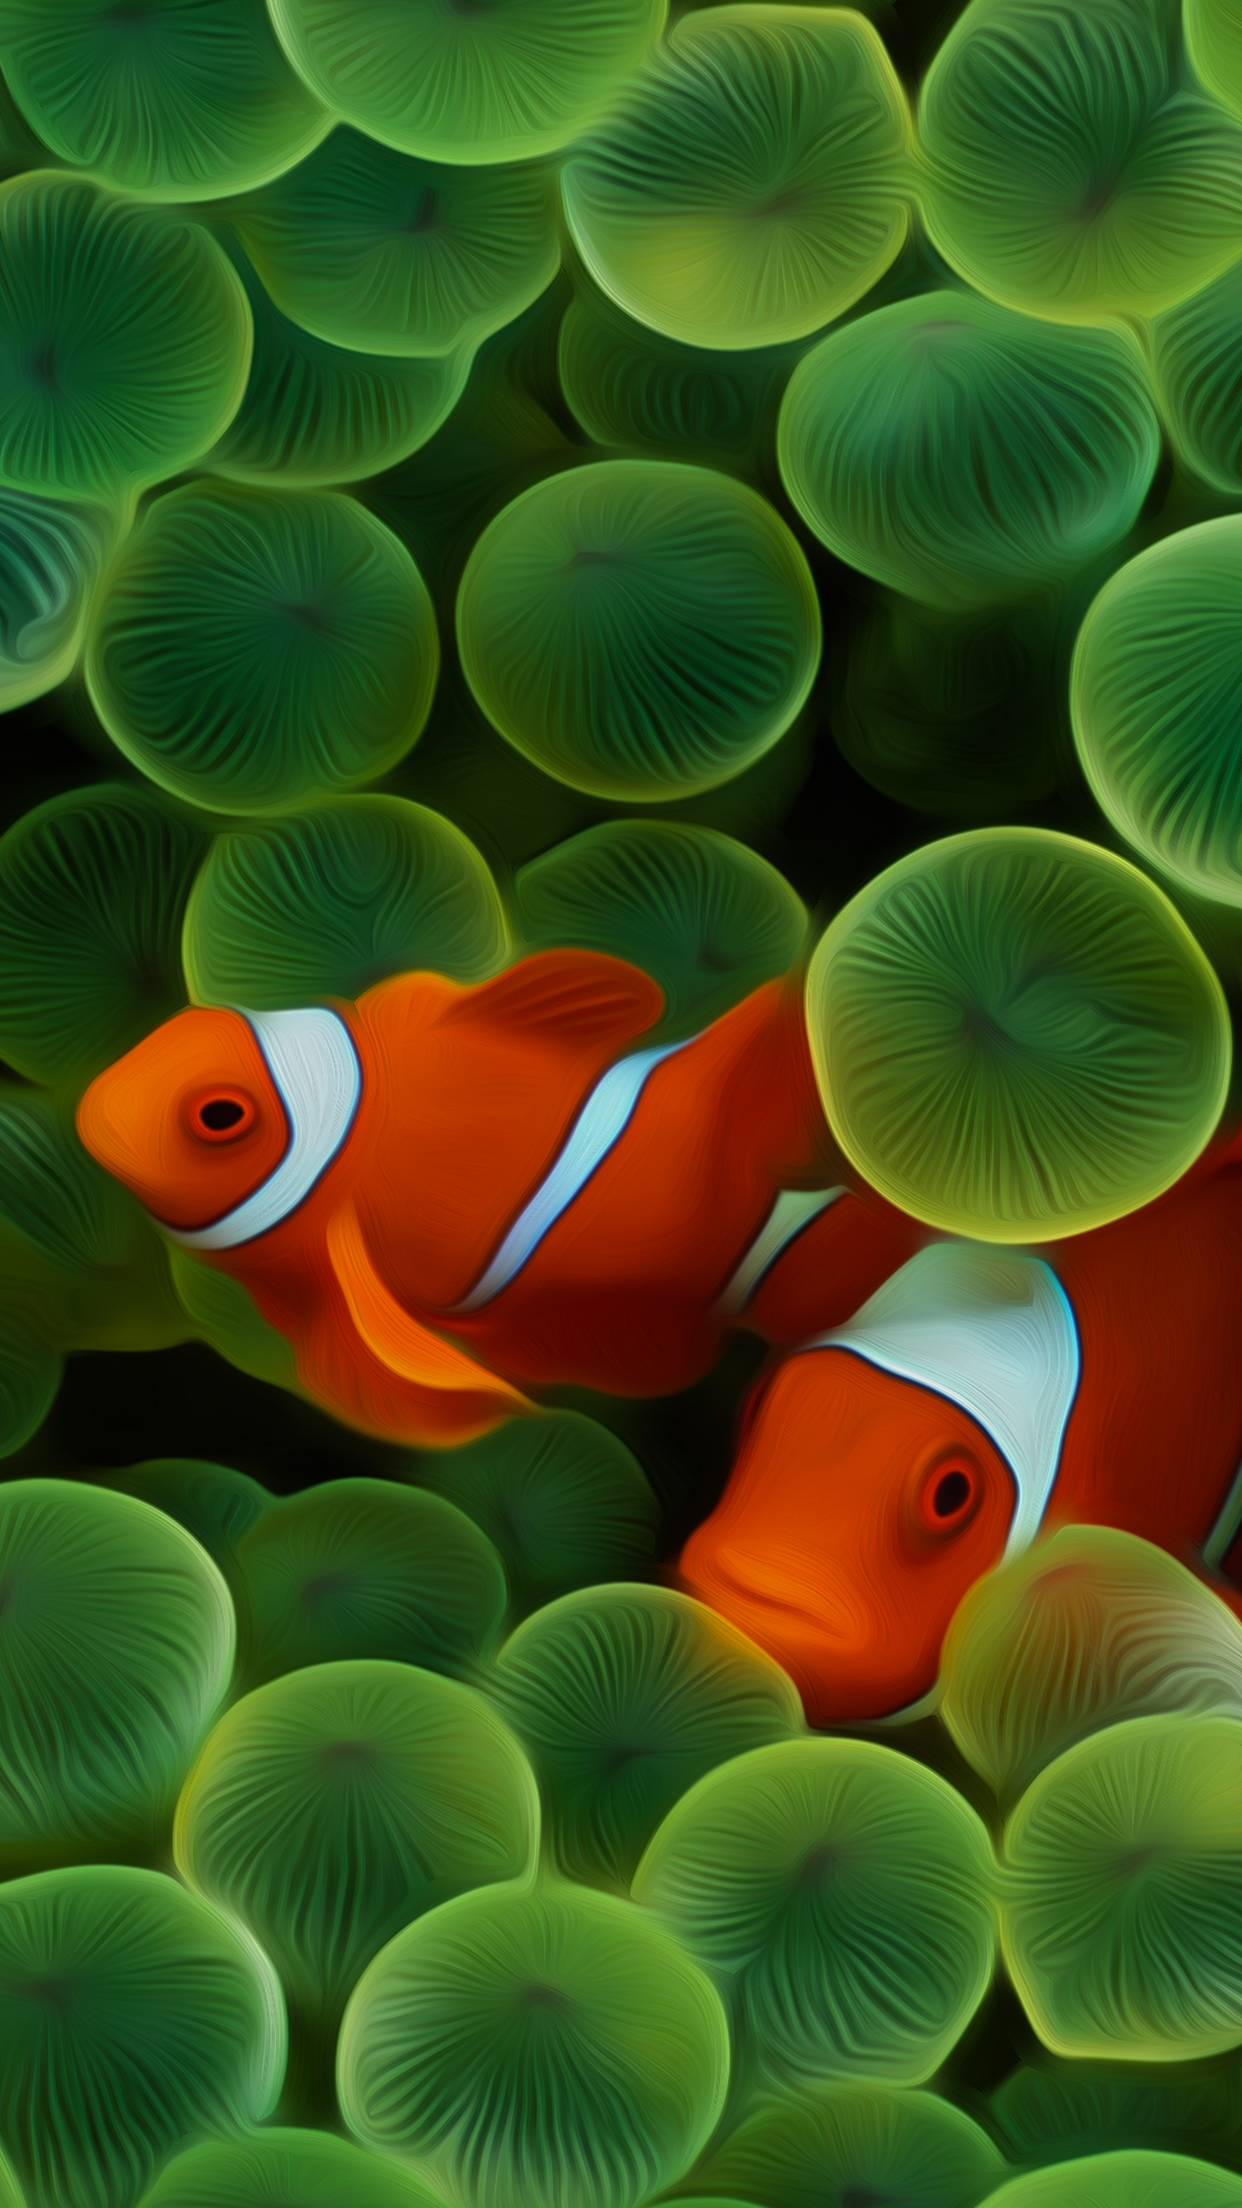 Pesce Pagliaccio Iphone 2g Clown Fish Wallpapers Central